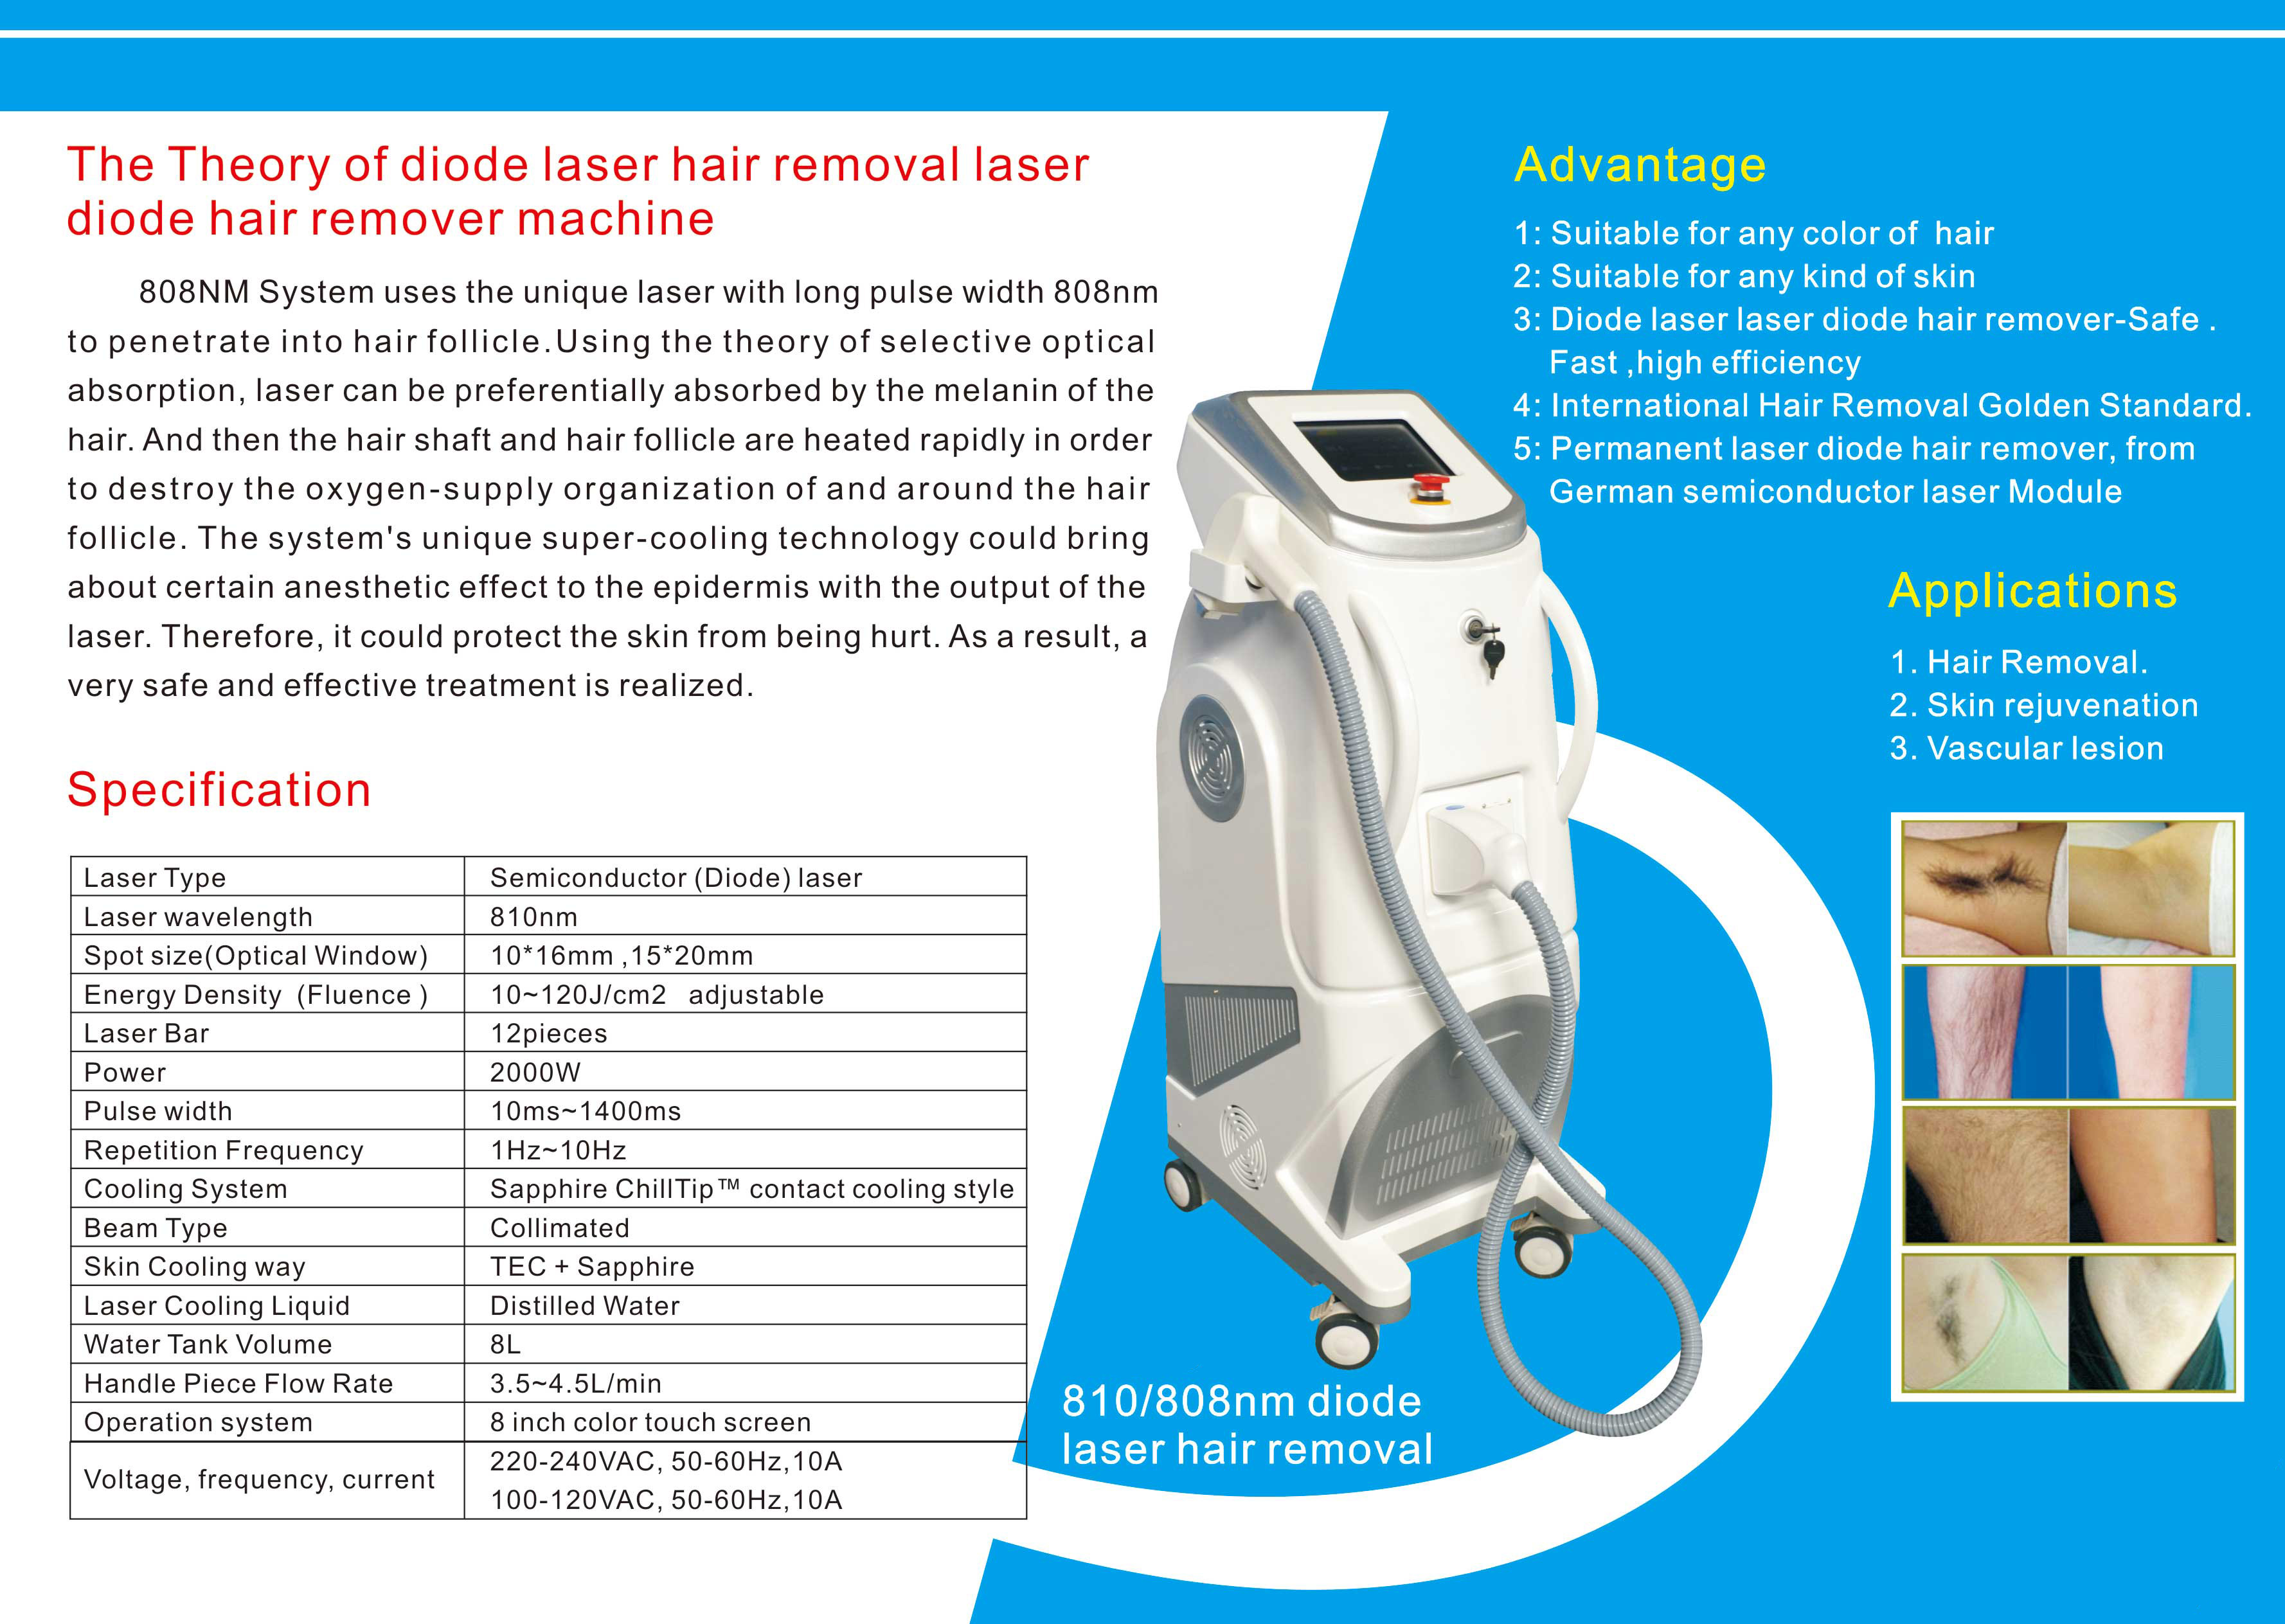 Professional 808nm Diode Pain Free Laser Hair Removal Machines 1-120j / Cm2